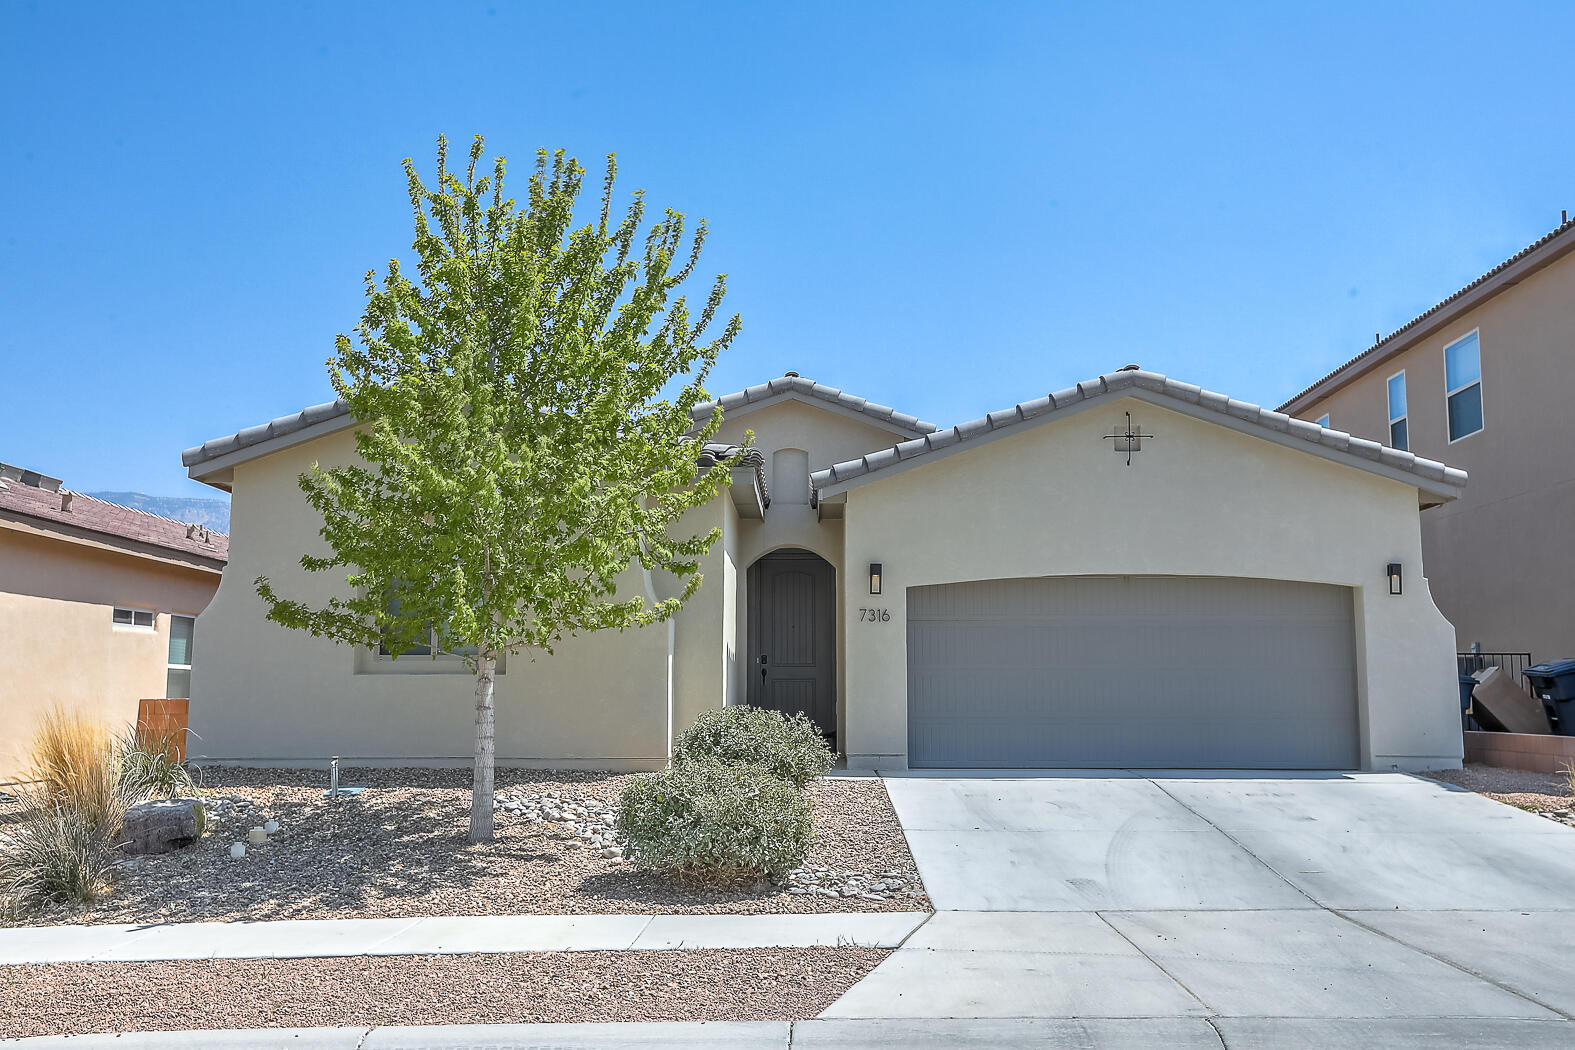 This beautiful Abrazo home is only 4 years old and boasts several lovely amenities! You'll enjoy the open and bright floor plan. In the kitchen you will find stainless steel appliances, granite counter tops, an island, and a large walk in pantry. Each bedroom has its own remote for fan/light use and 2 inch blinds. The spacious master has a separate glass door shower and tub, a double sink vanity, and a huge walk-in closet. There is 18 inch tile through out the home, oil rubbed bronze fixtures, and nest air controls. The finished garage can fit 3 cars with 1 tandem or you could use the space for a workshop or extra storage. This smart home has USB outlets, and access to lighting, air controls, front door unlock/lock features through the Vera Home app.